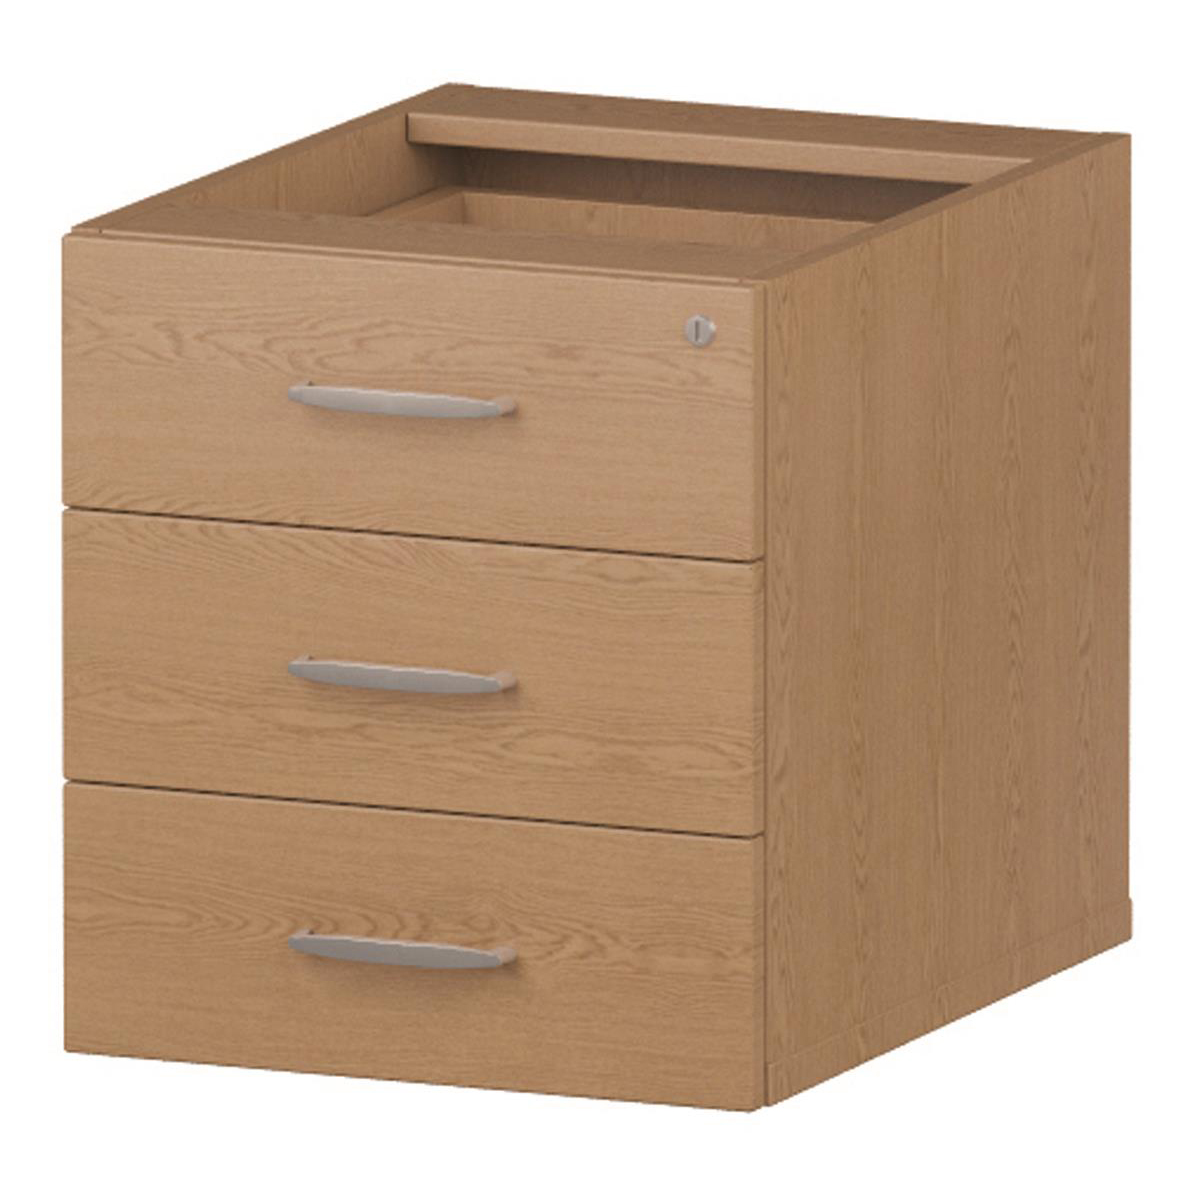 Trexus 3 Drawer Fixed Pedestal 426x463x480mm Oak Ref I001643